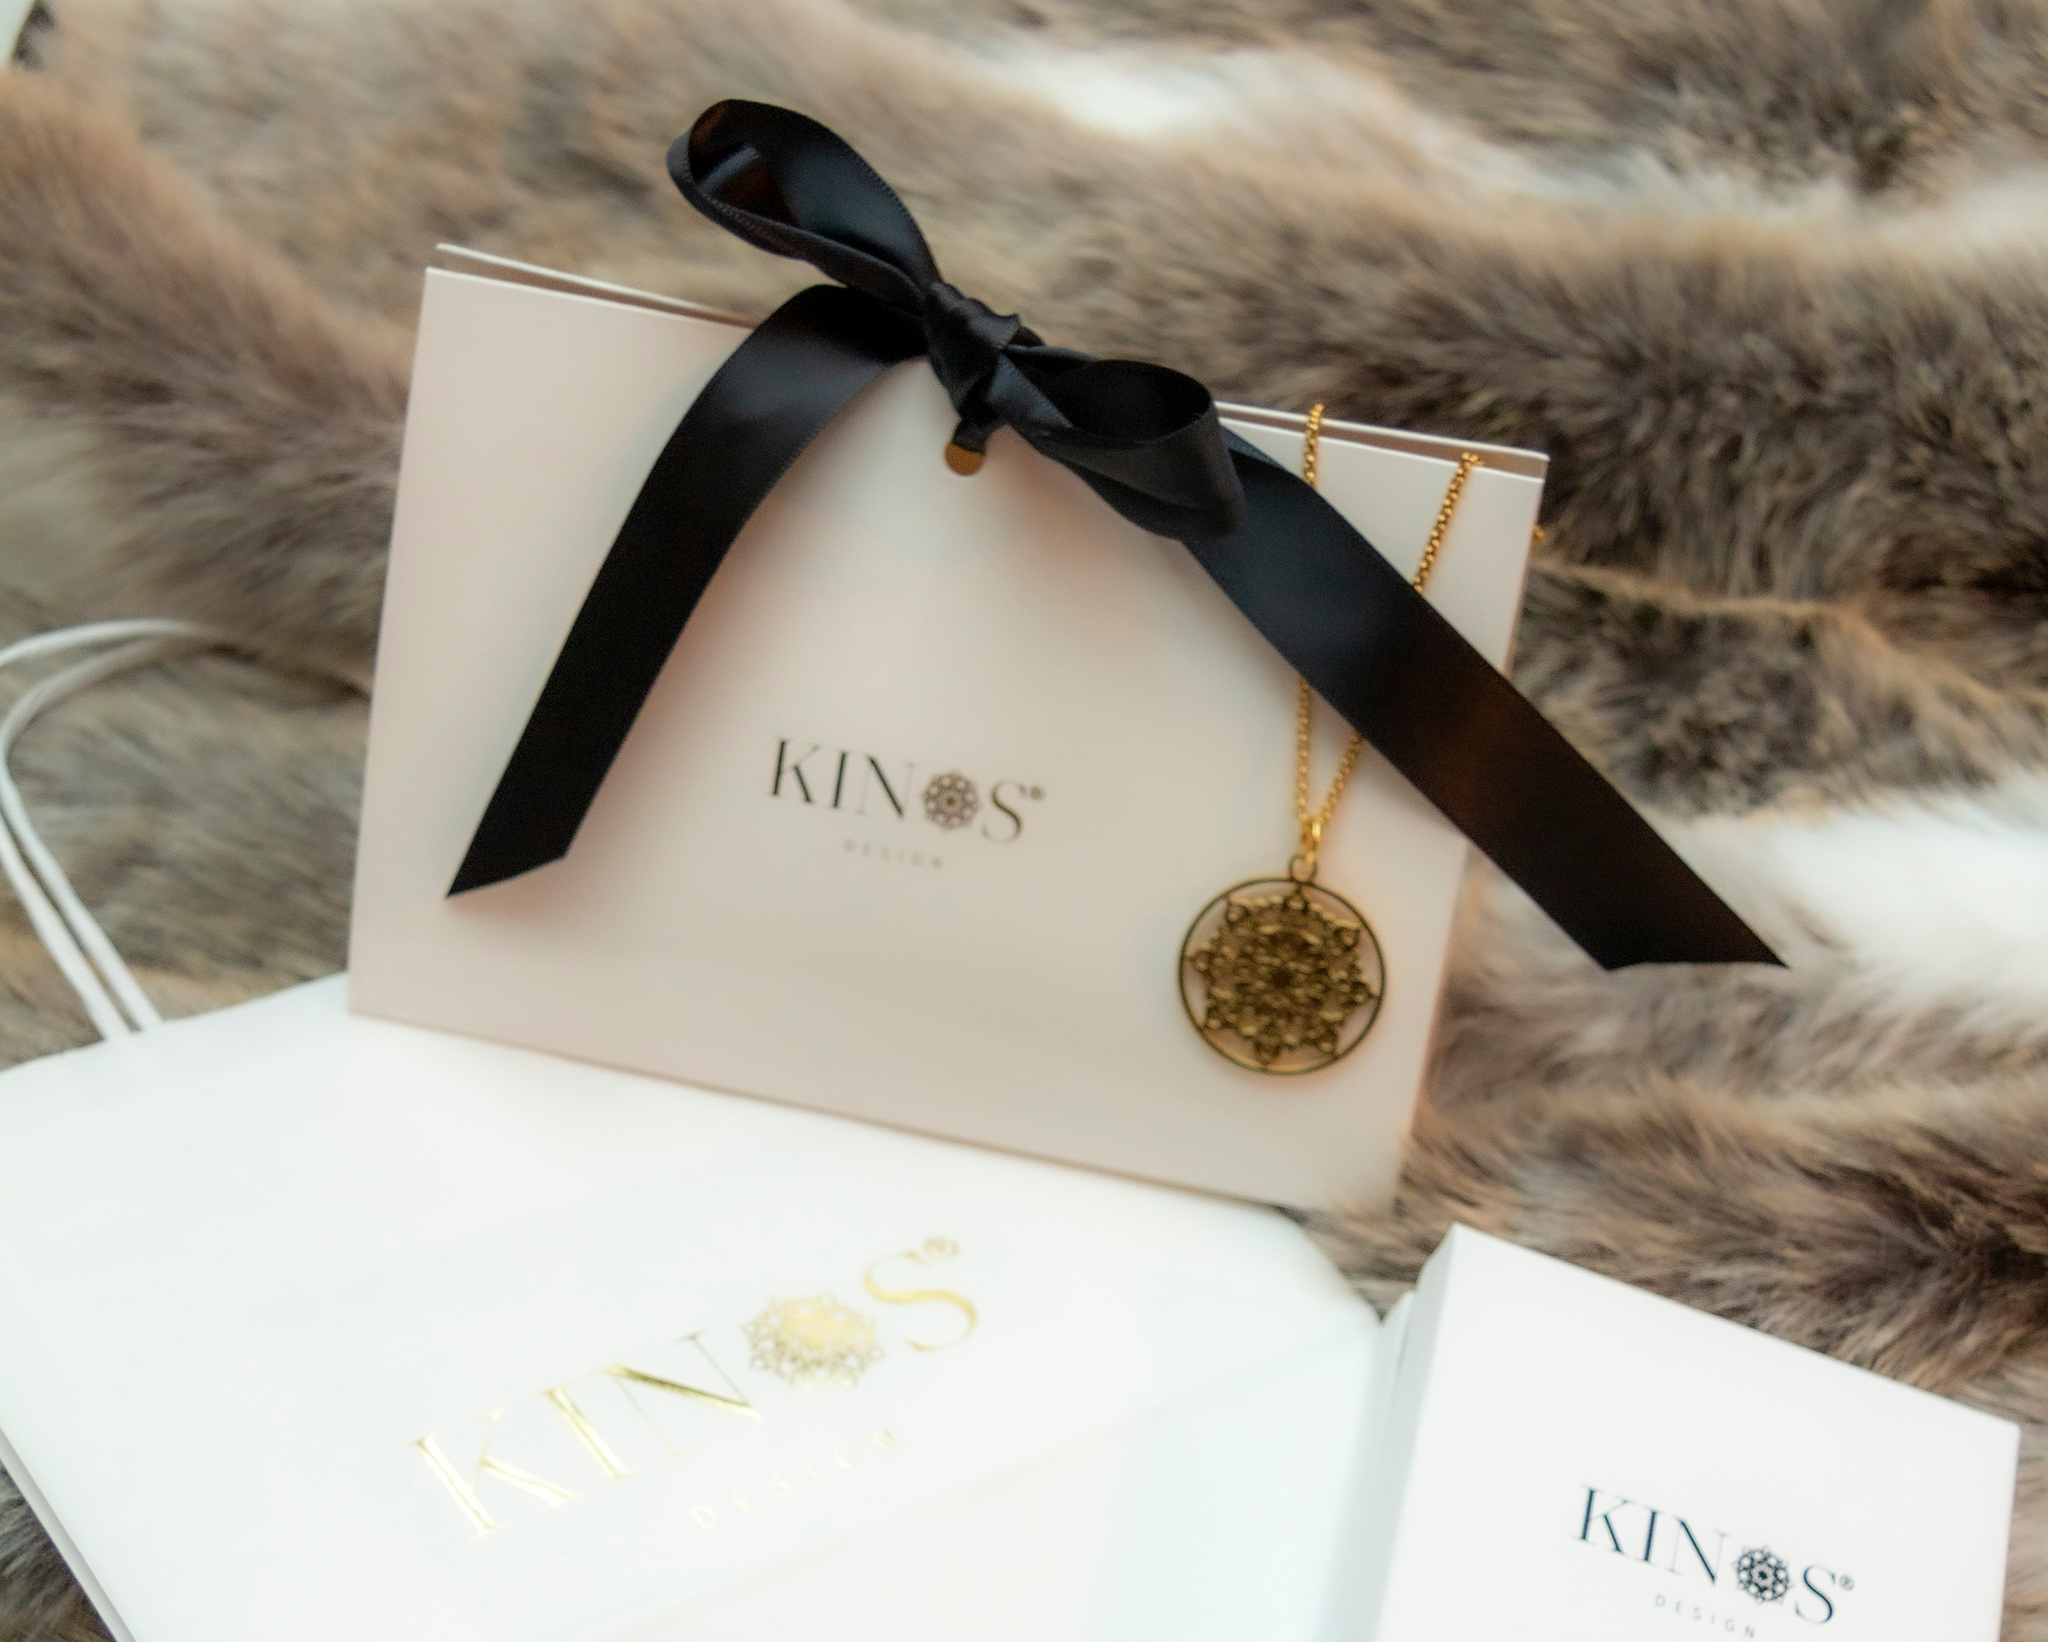 Kinos Design Gift Cards for the special moments in life